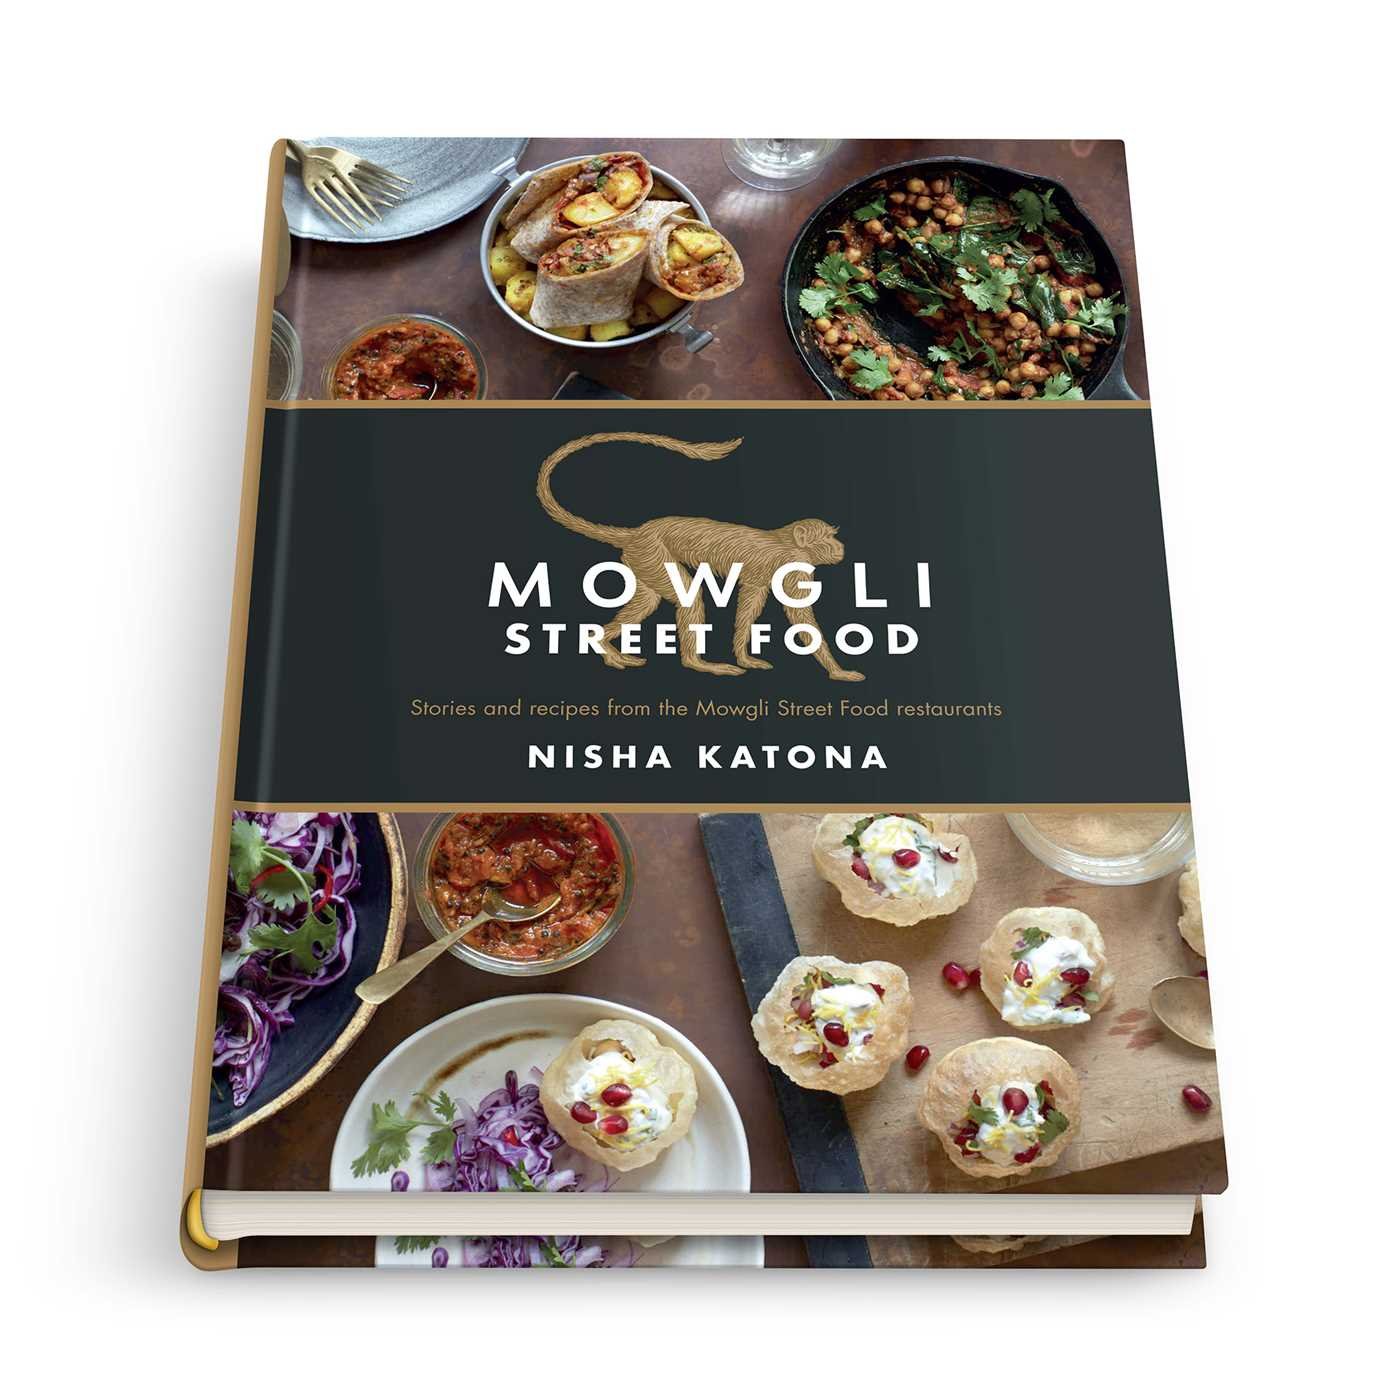 Mowgli authentic indian street food book by nisha katona book cover image jpg mowgli authentic indian street food forumfinder Choice Image